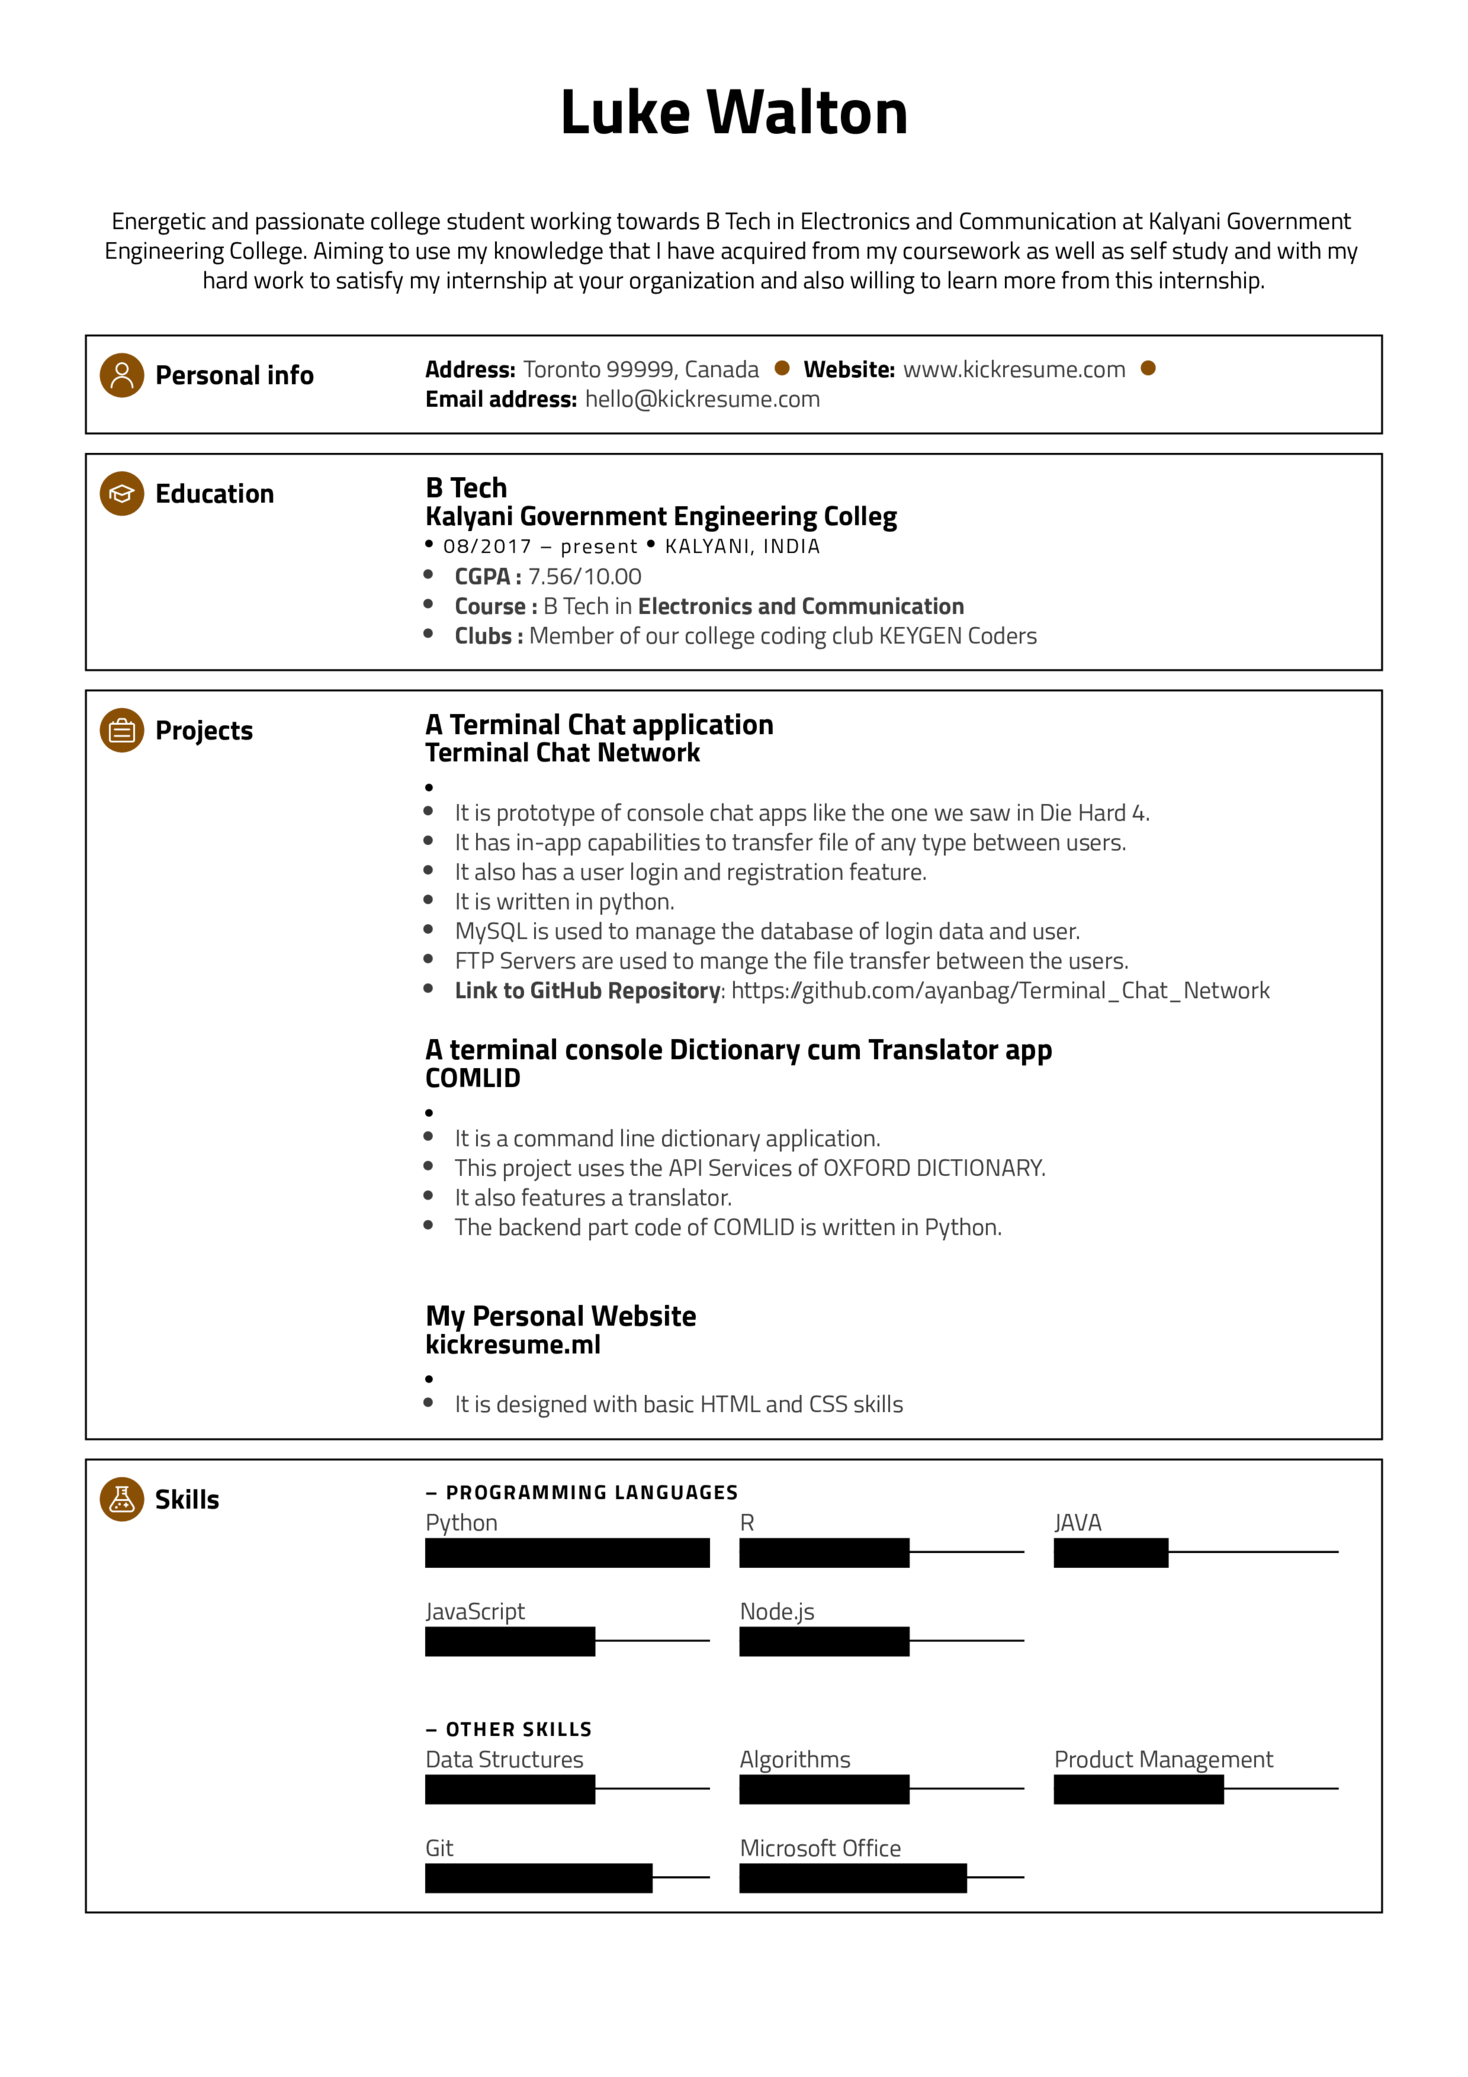 Software Engineer Intern At Google Resume Sample Kickresume